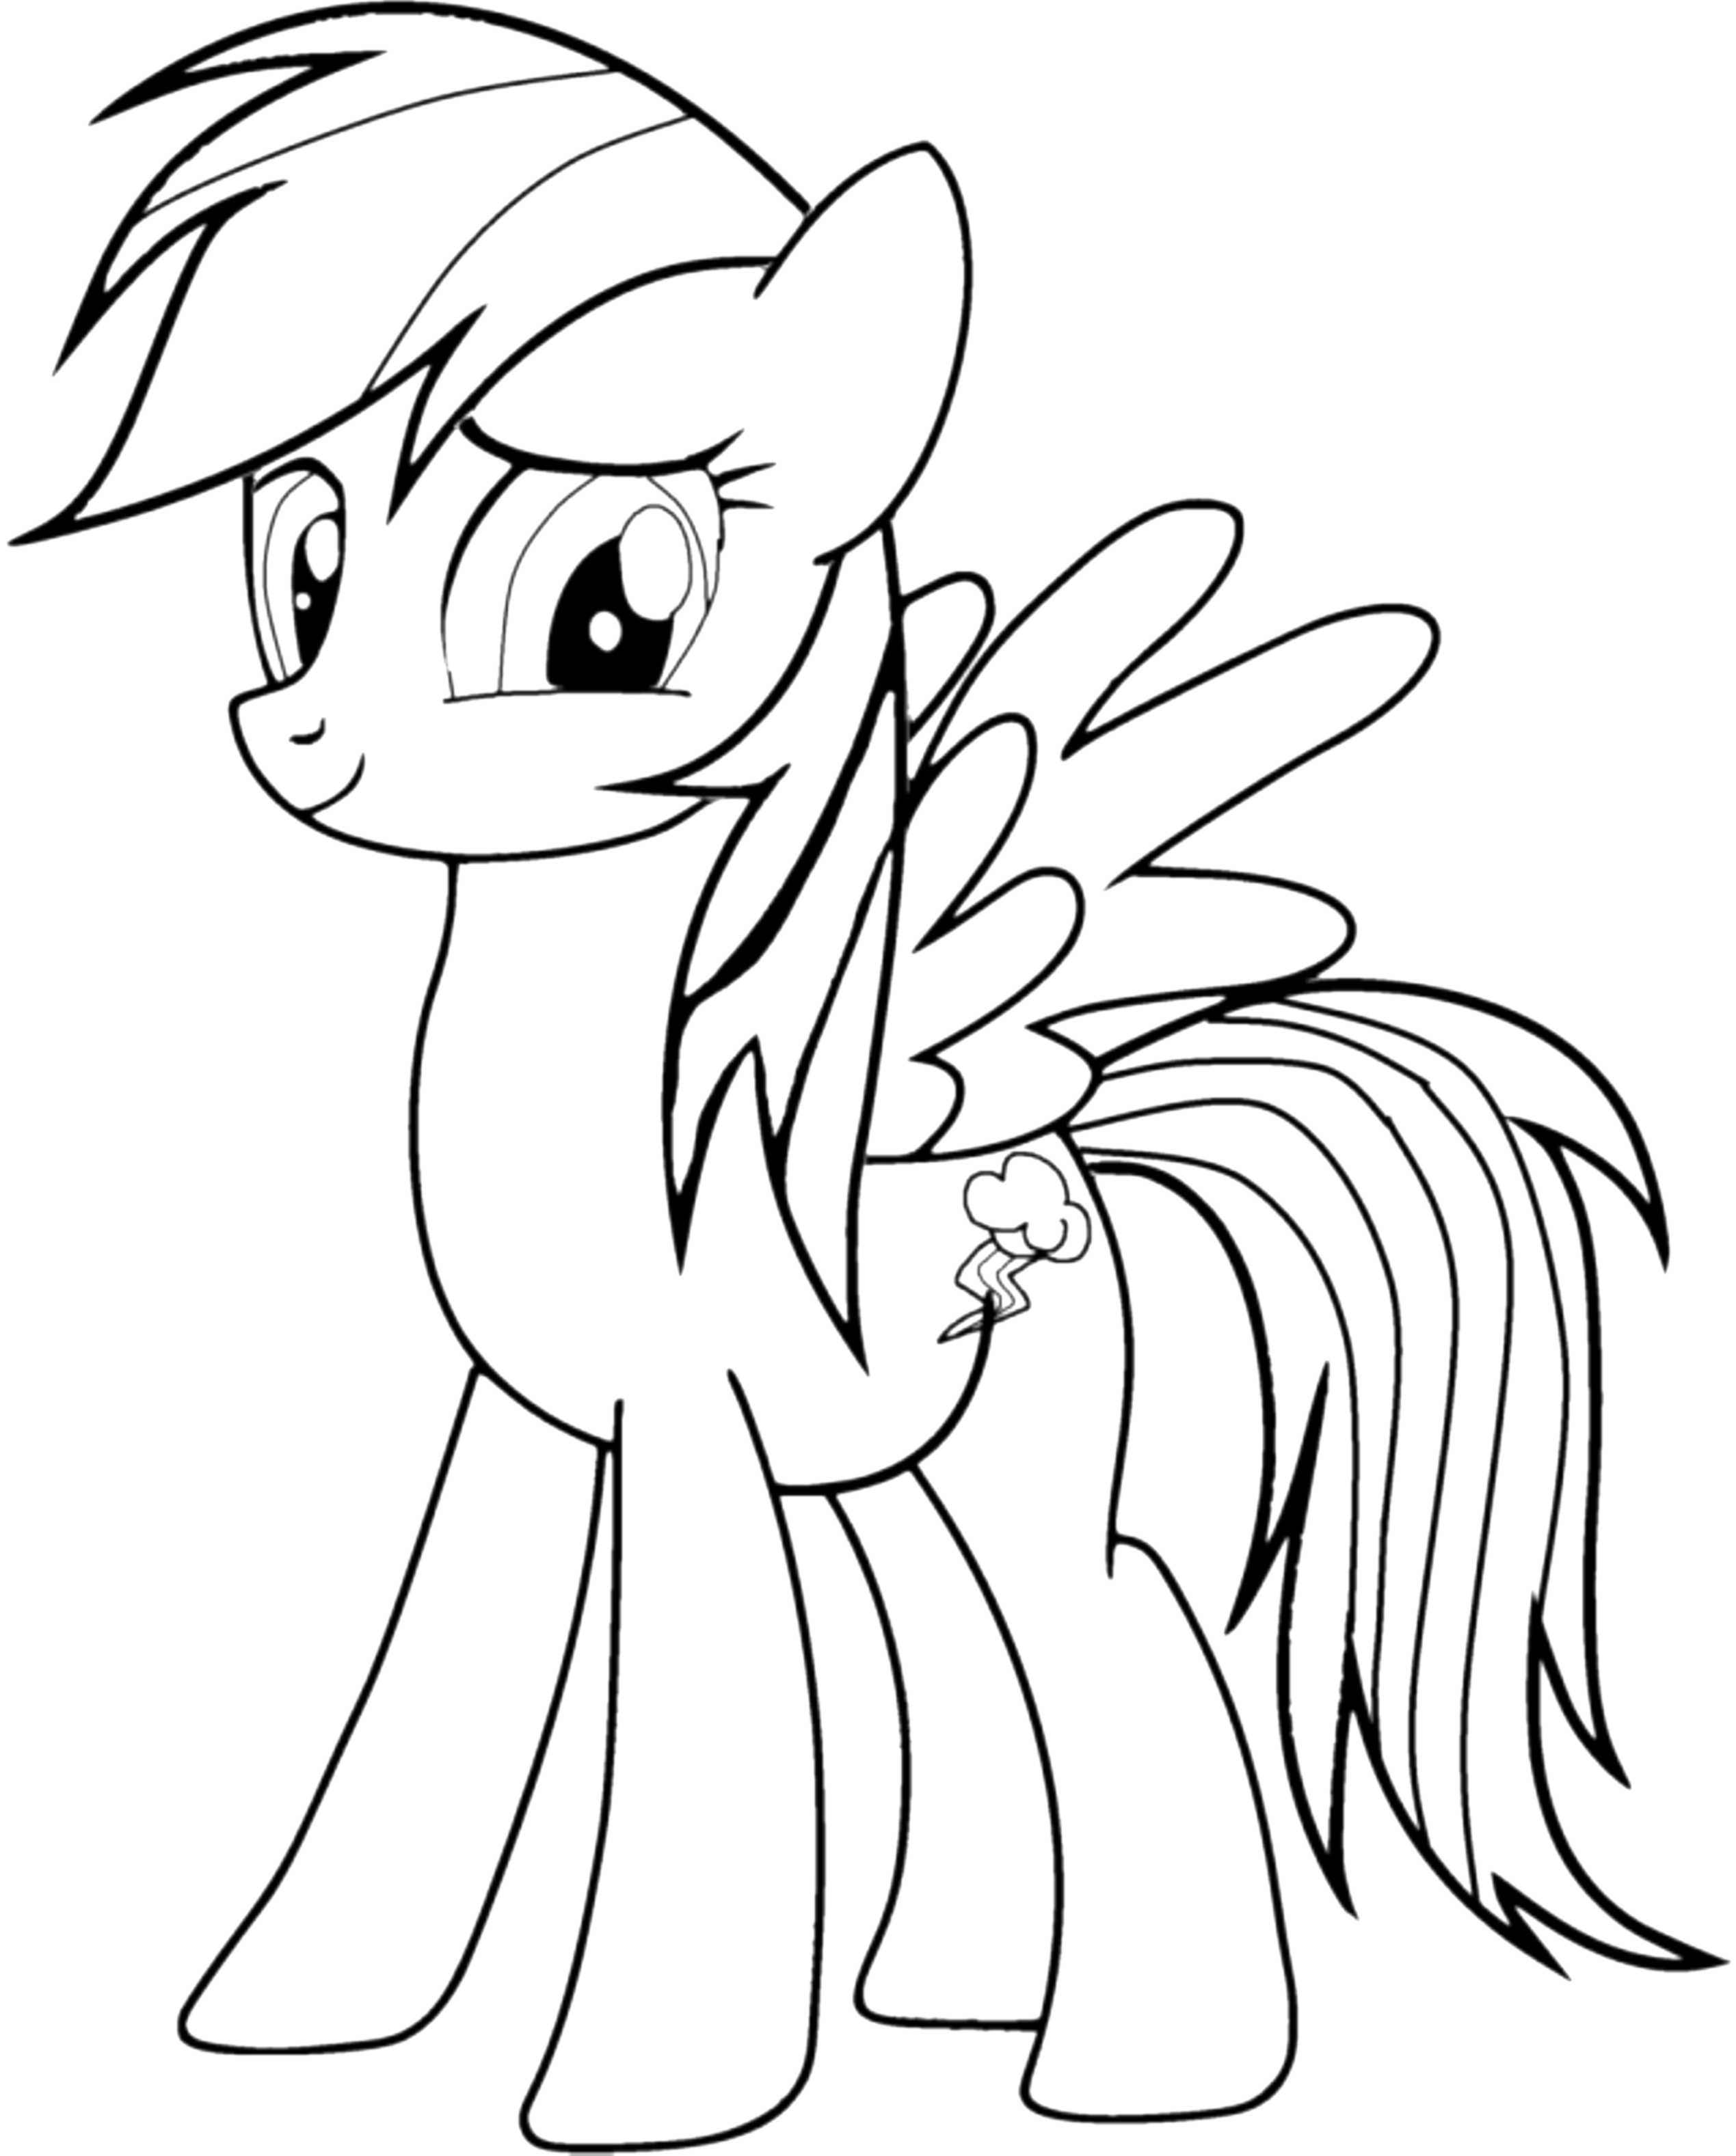 Rainbow dash coloring pages best coloring pages for kids for Fun coloring pages for kids